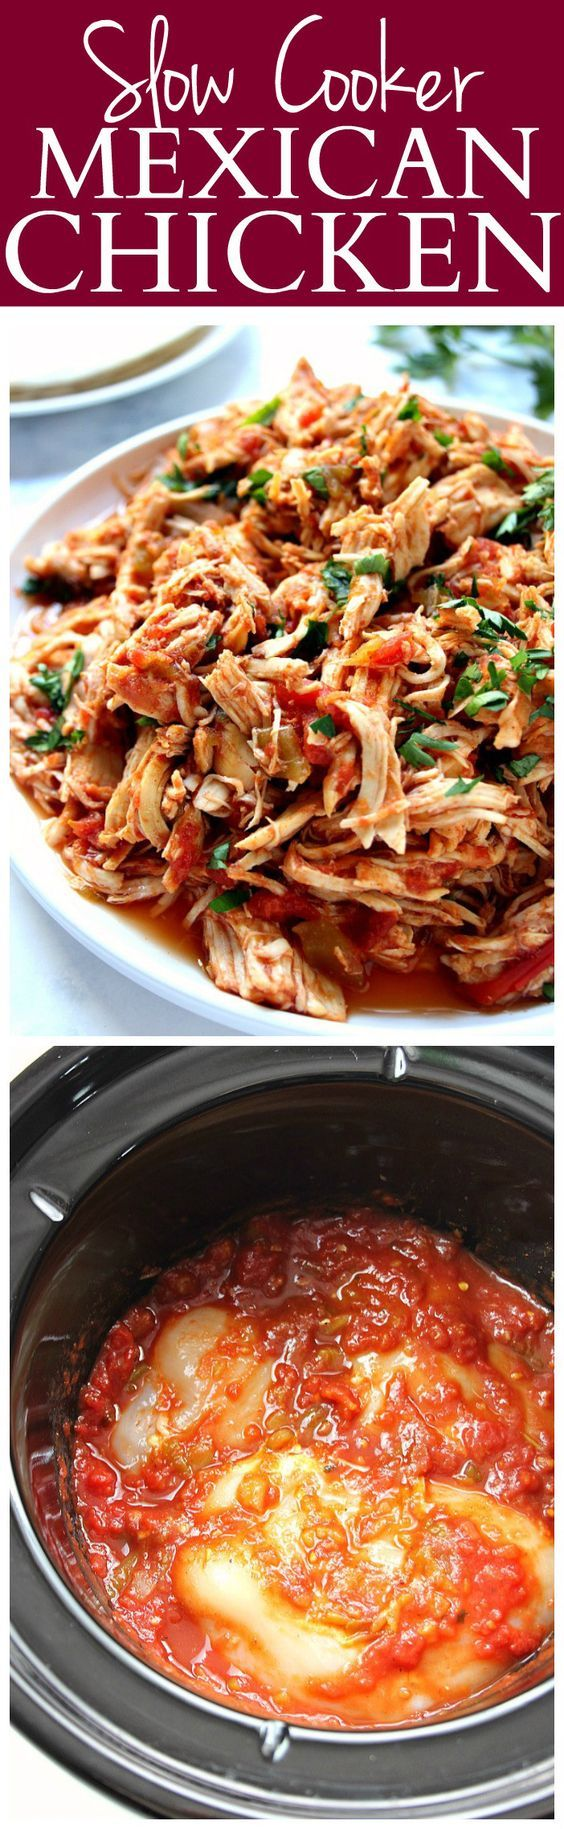 Slow Cooker Mexican Chicken Recipe - super easy and flavorful shredded chicken cooked in slow cooker! Use it in tacos, burritos, enchiladas, nachos and dips!